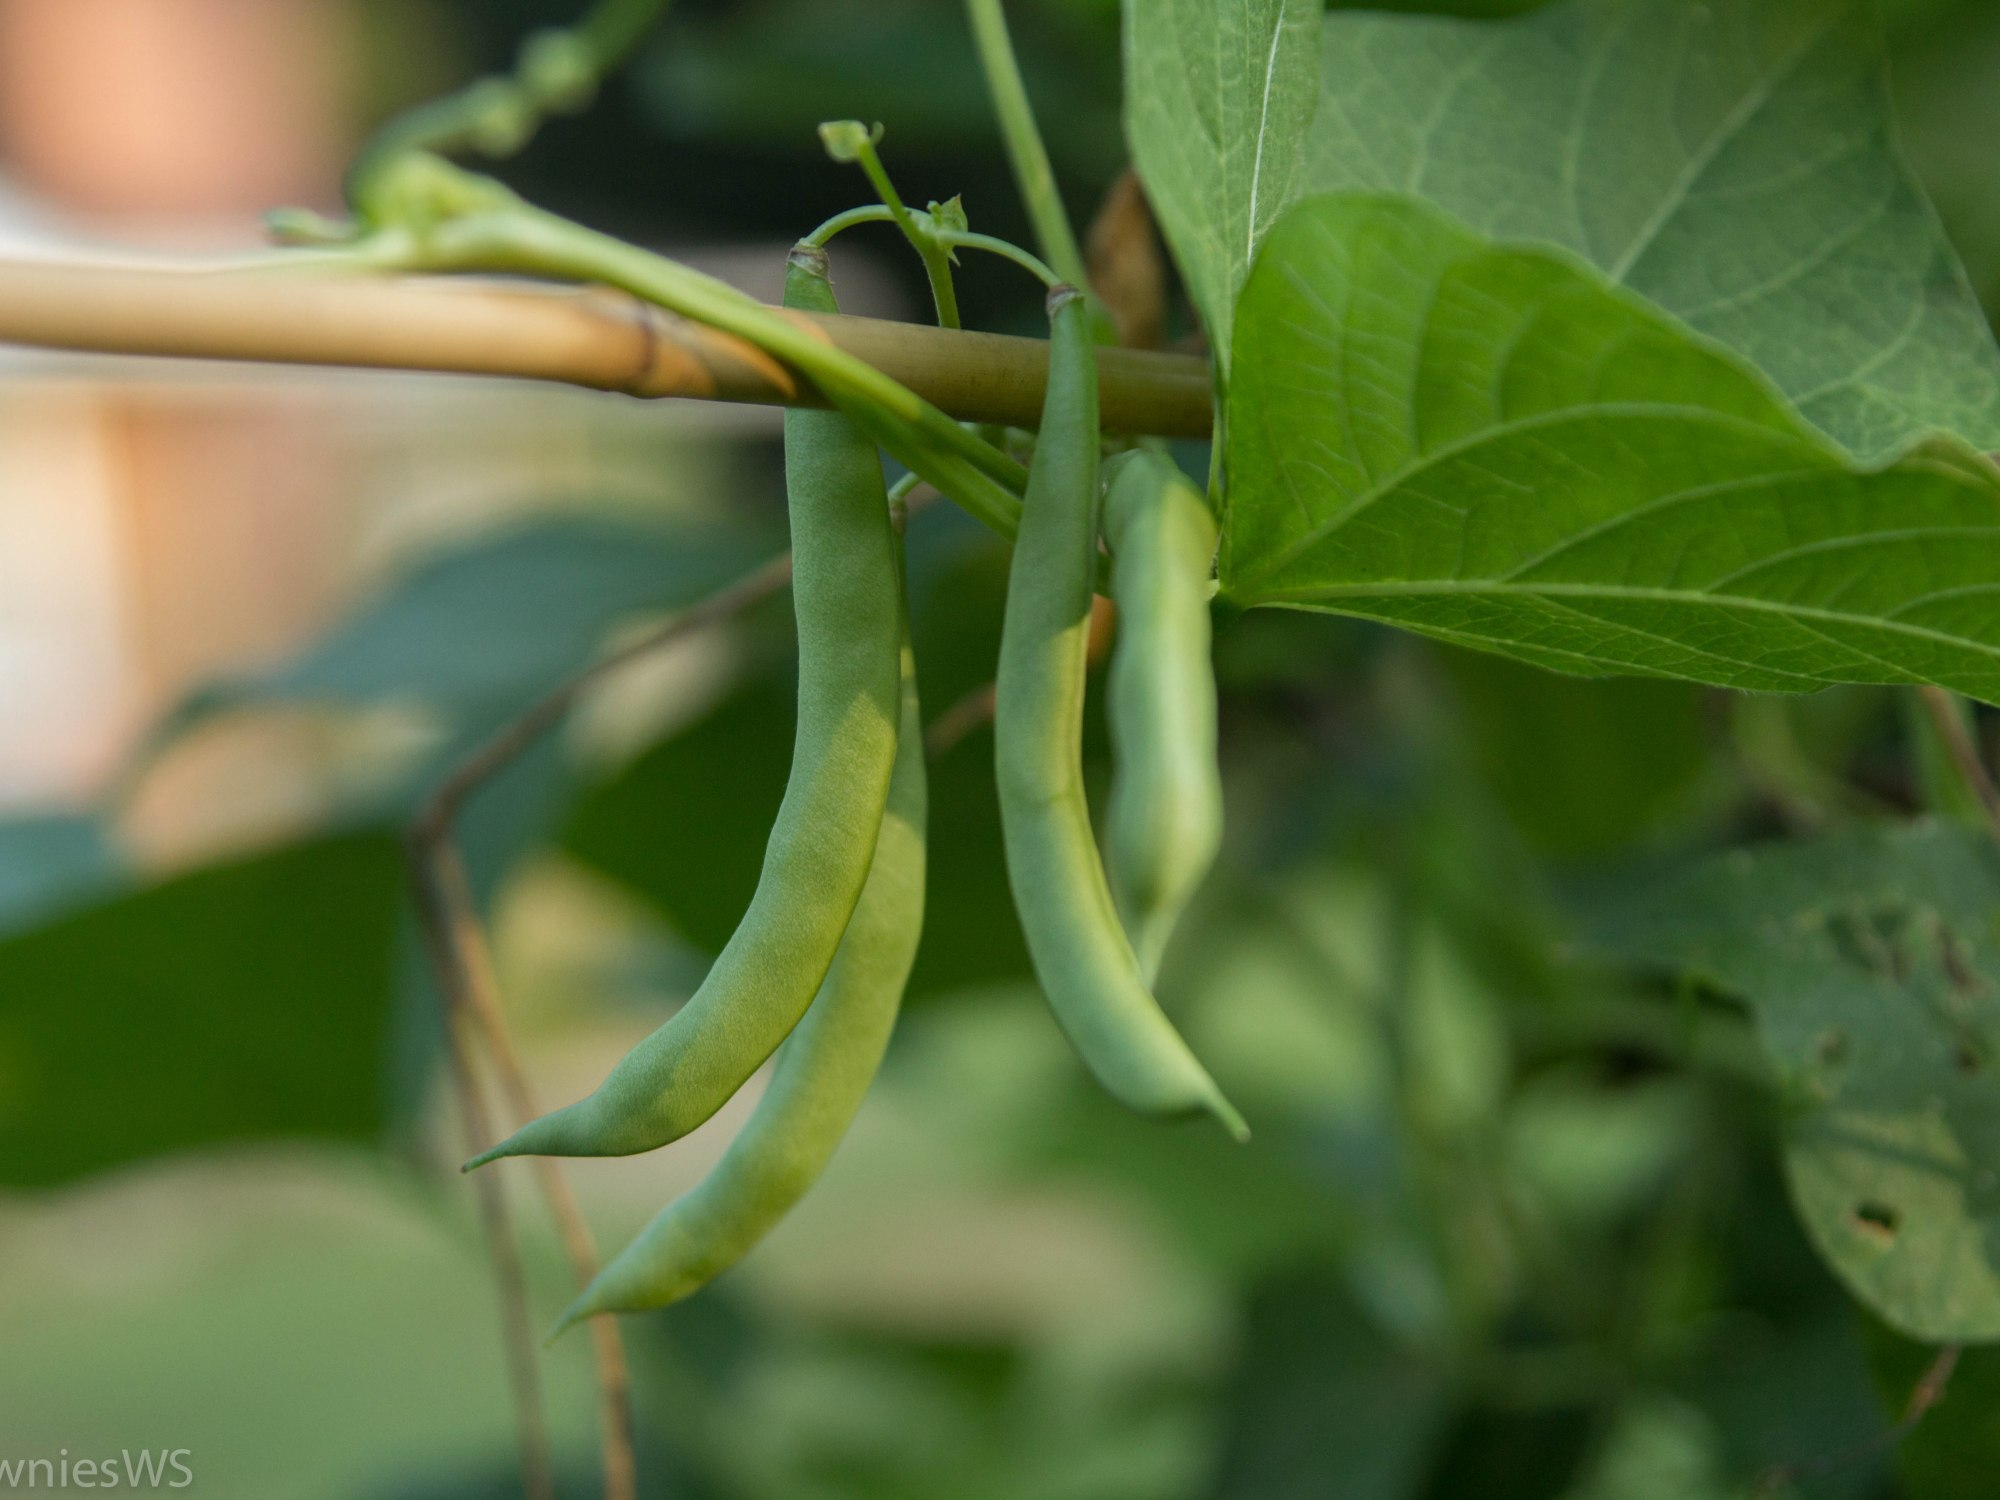 String Beans_TowniesWS.com